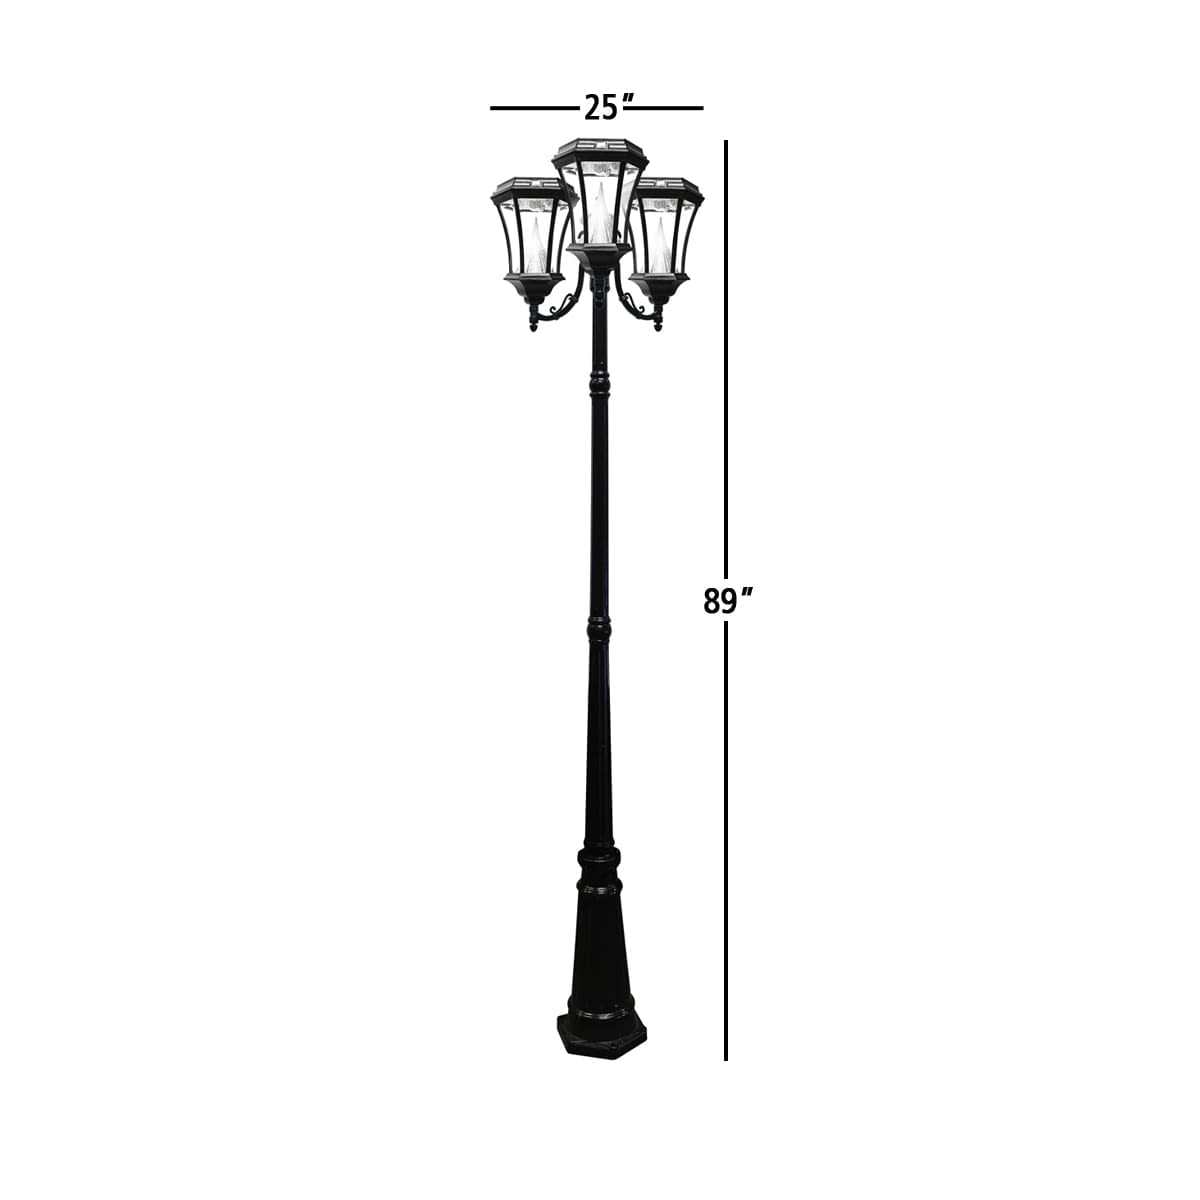 Victorian Solar Lamp Post by Gama Sonic GS-94T 3 Head Lamp Post Measurements